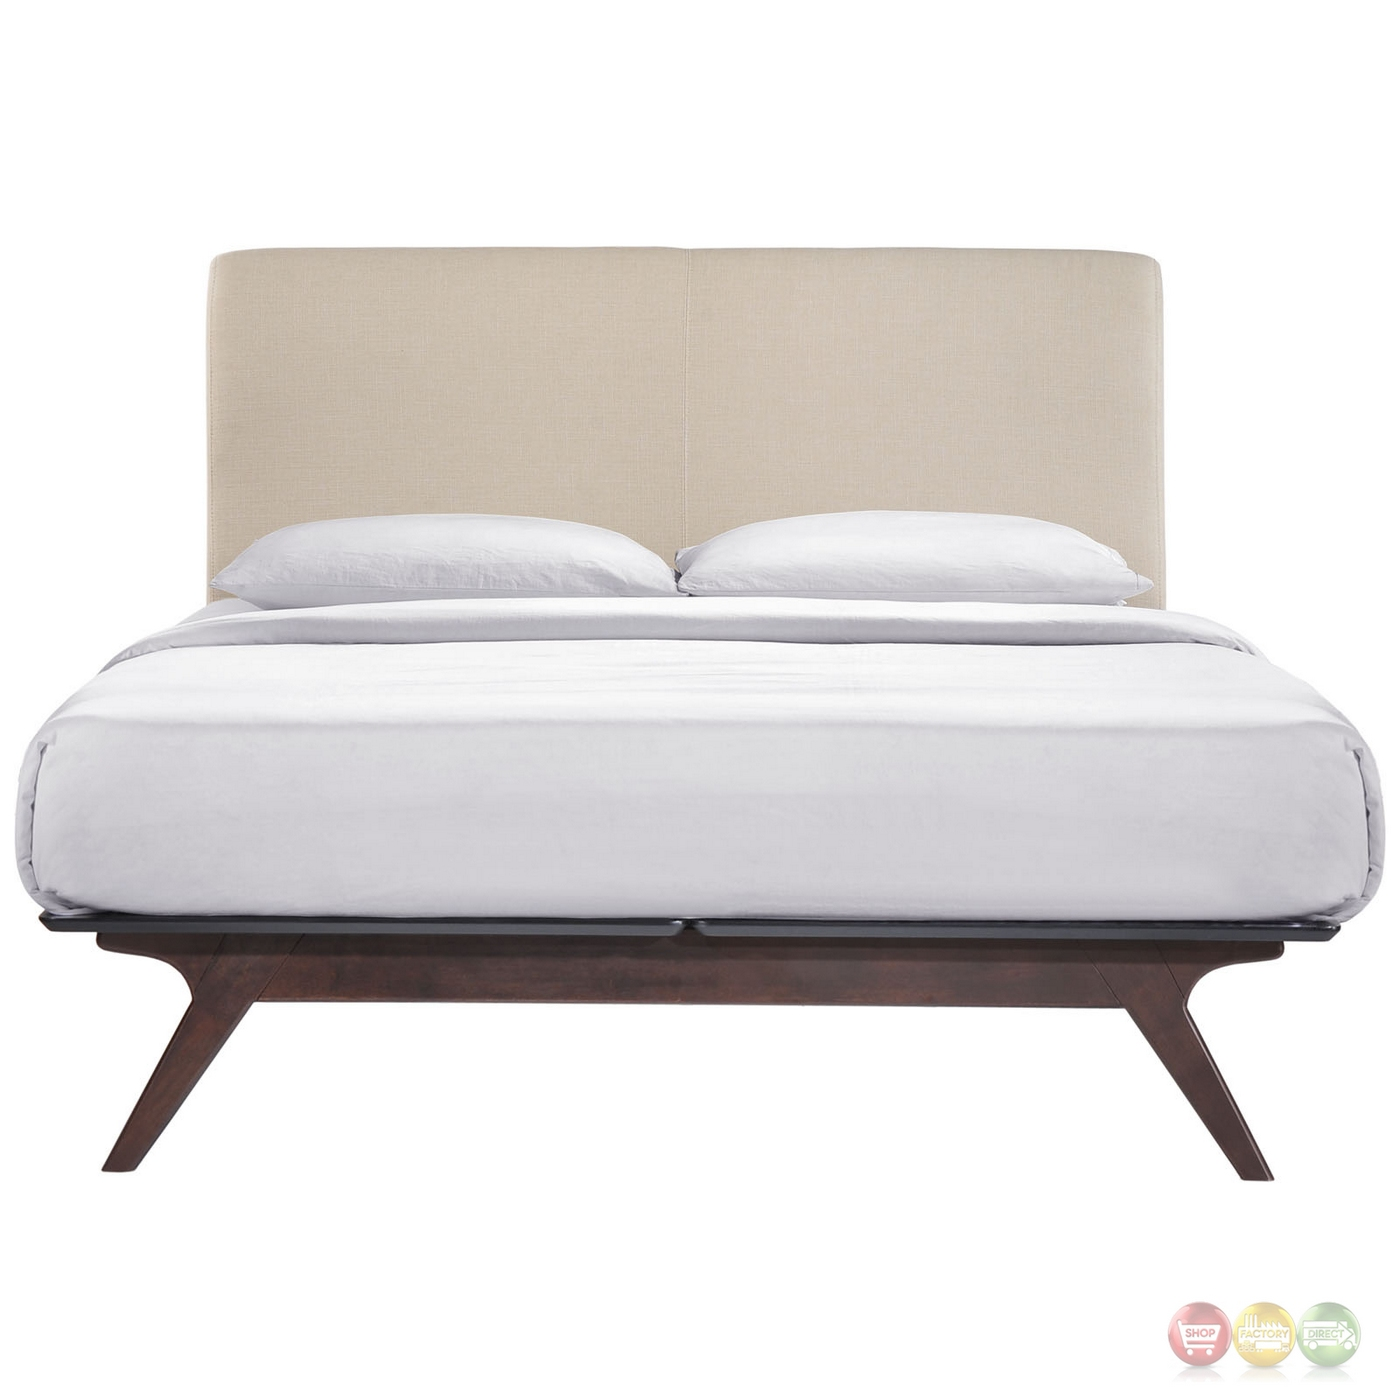 Tracy contemporary upholstered platform king bed for Contemporary beds